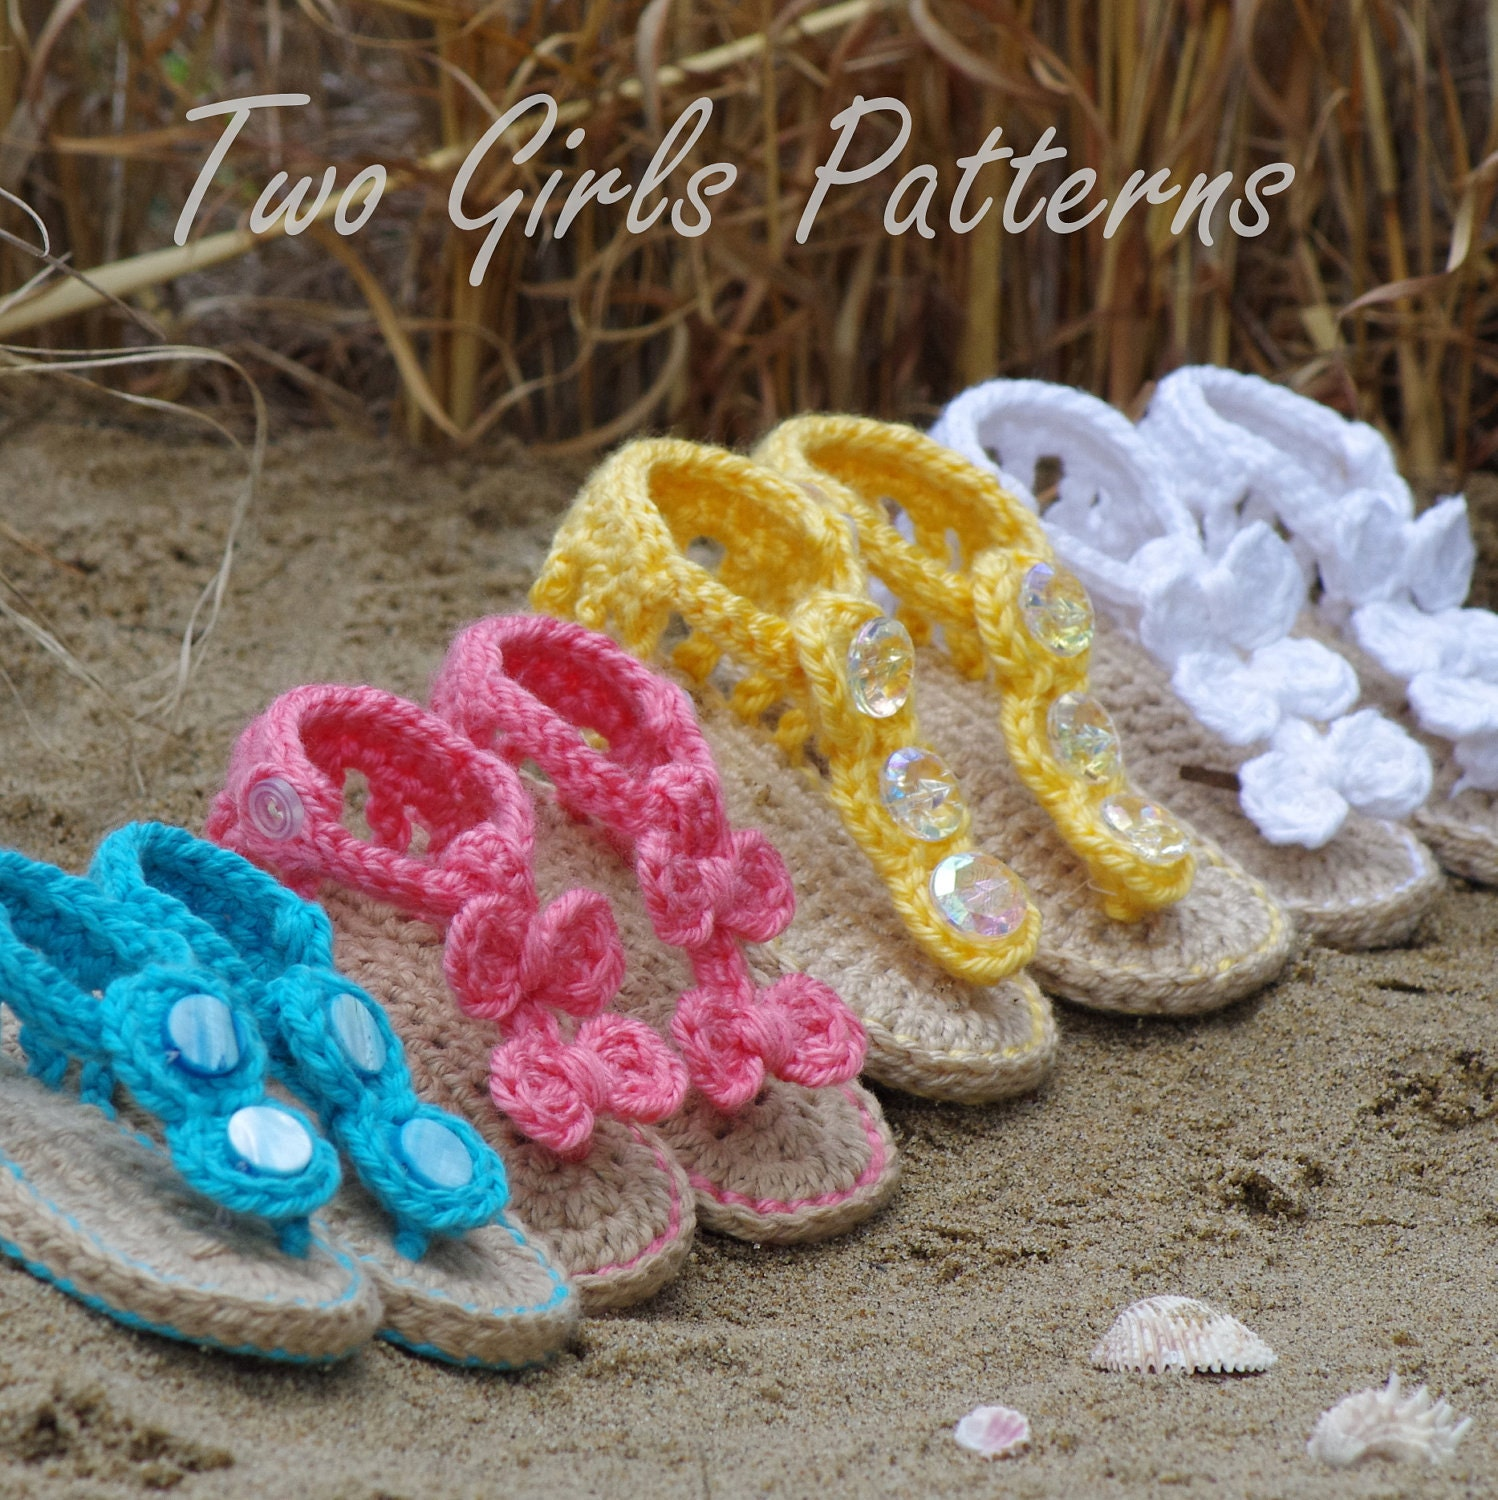 Baby crochet pattern sandal 2 Versions and by TwoGirlsPatterns